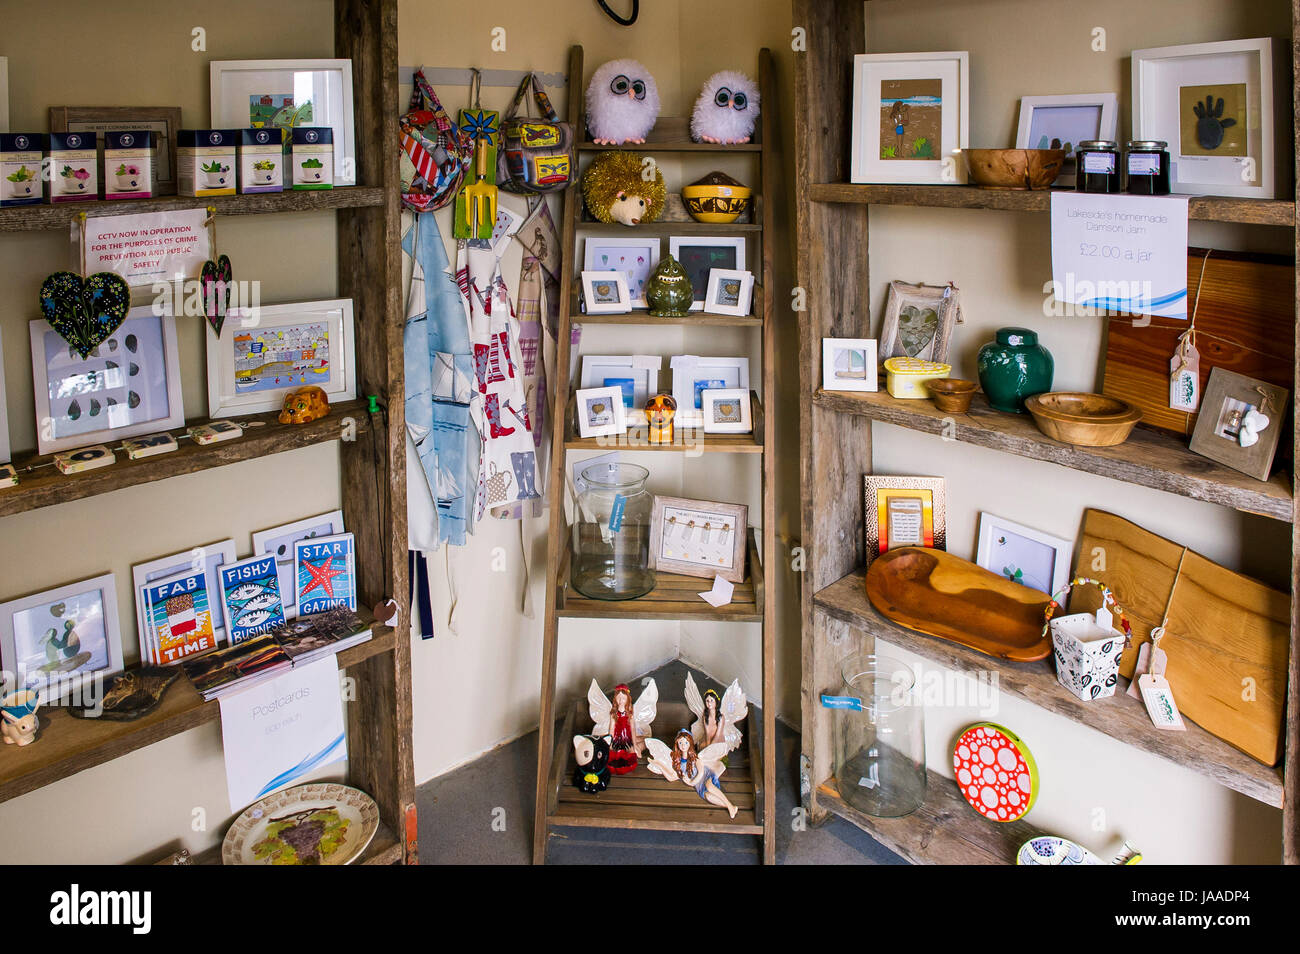 Gifts On Display In A Small Gift Shop Stock Photo 144059836